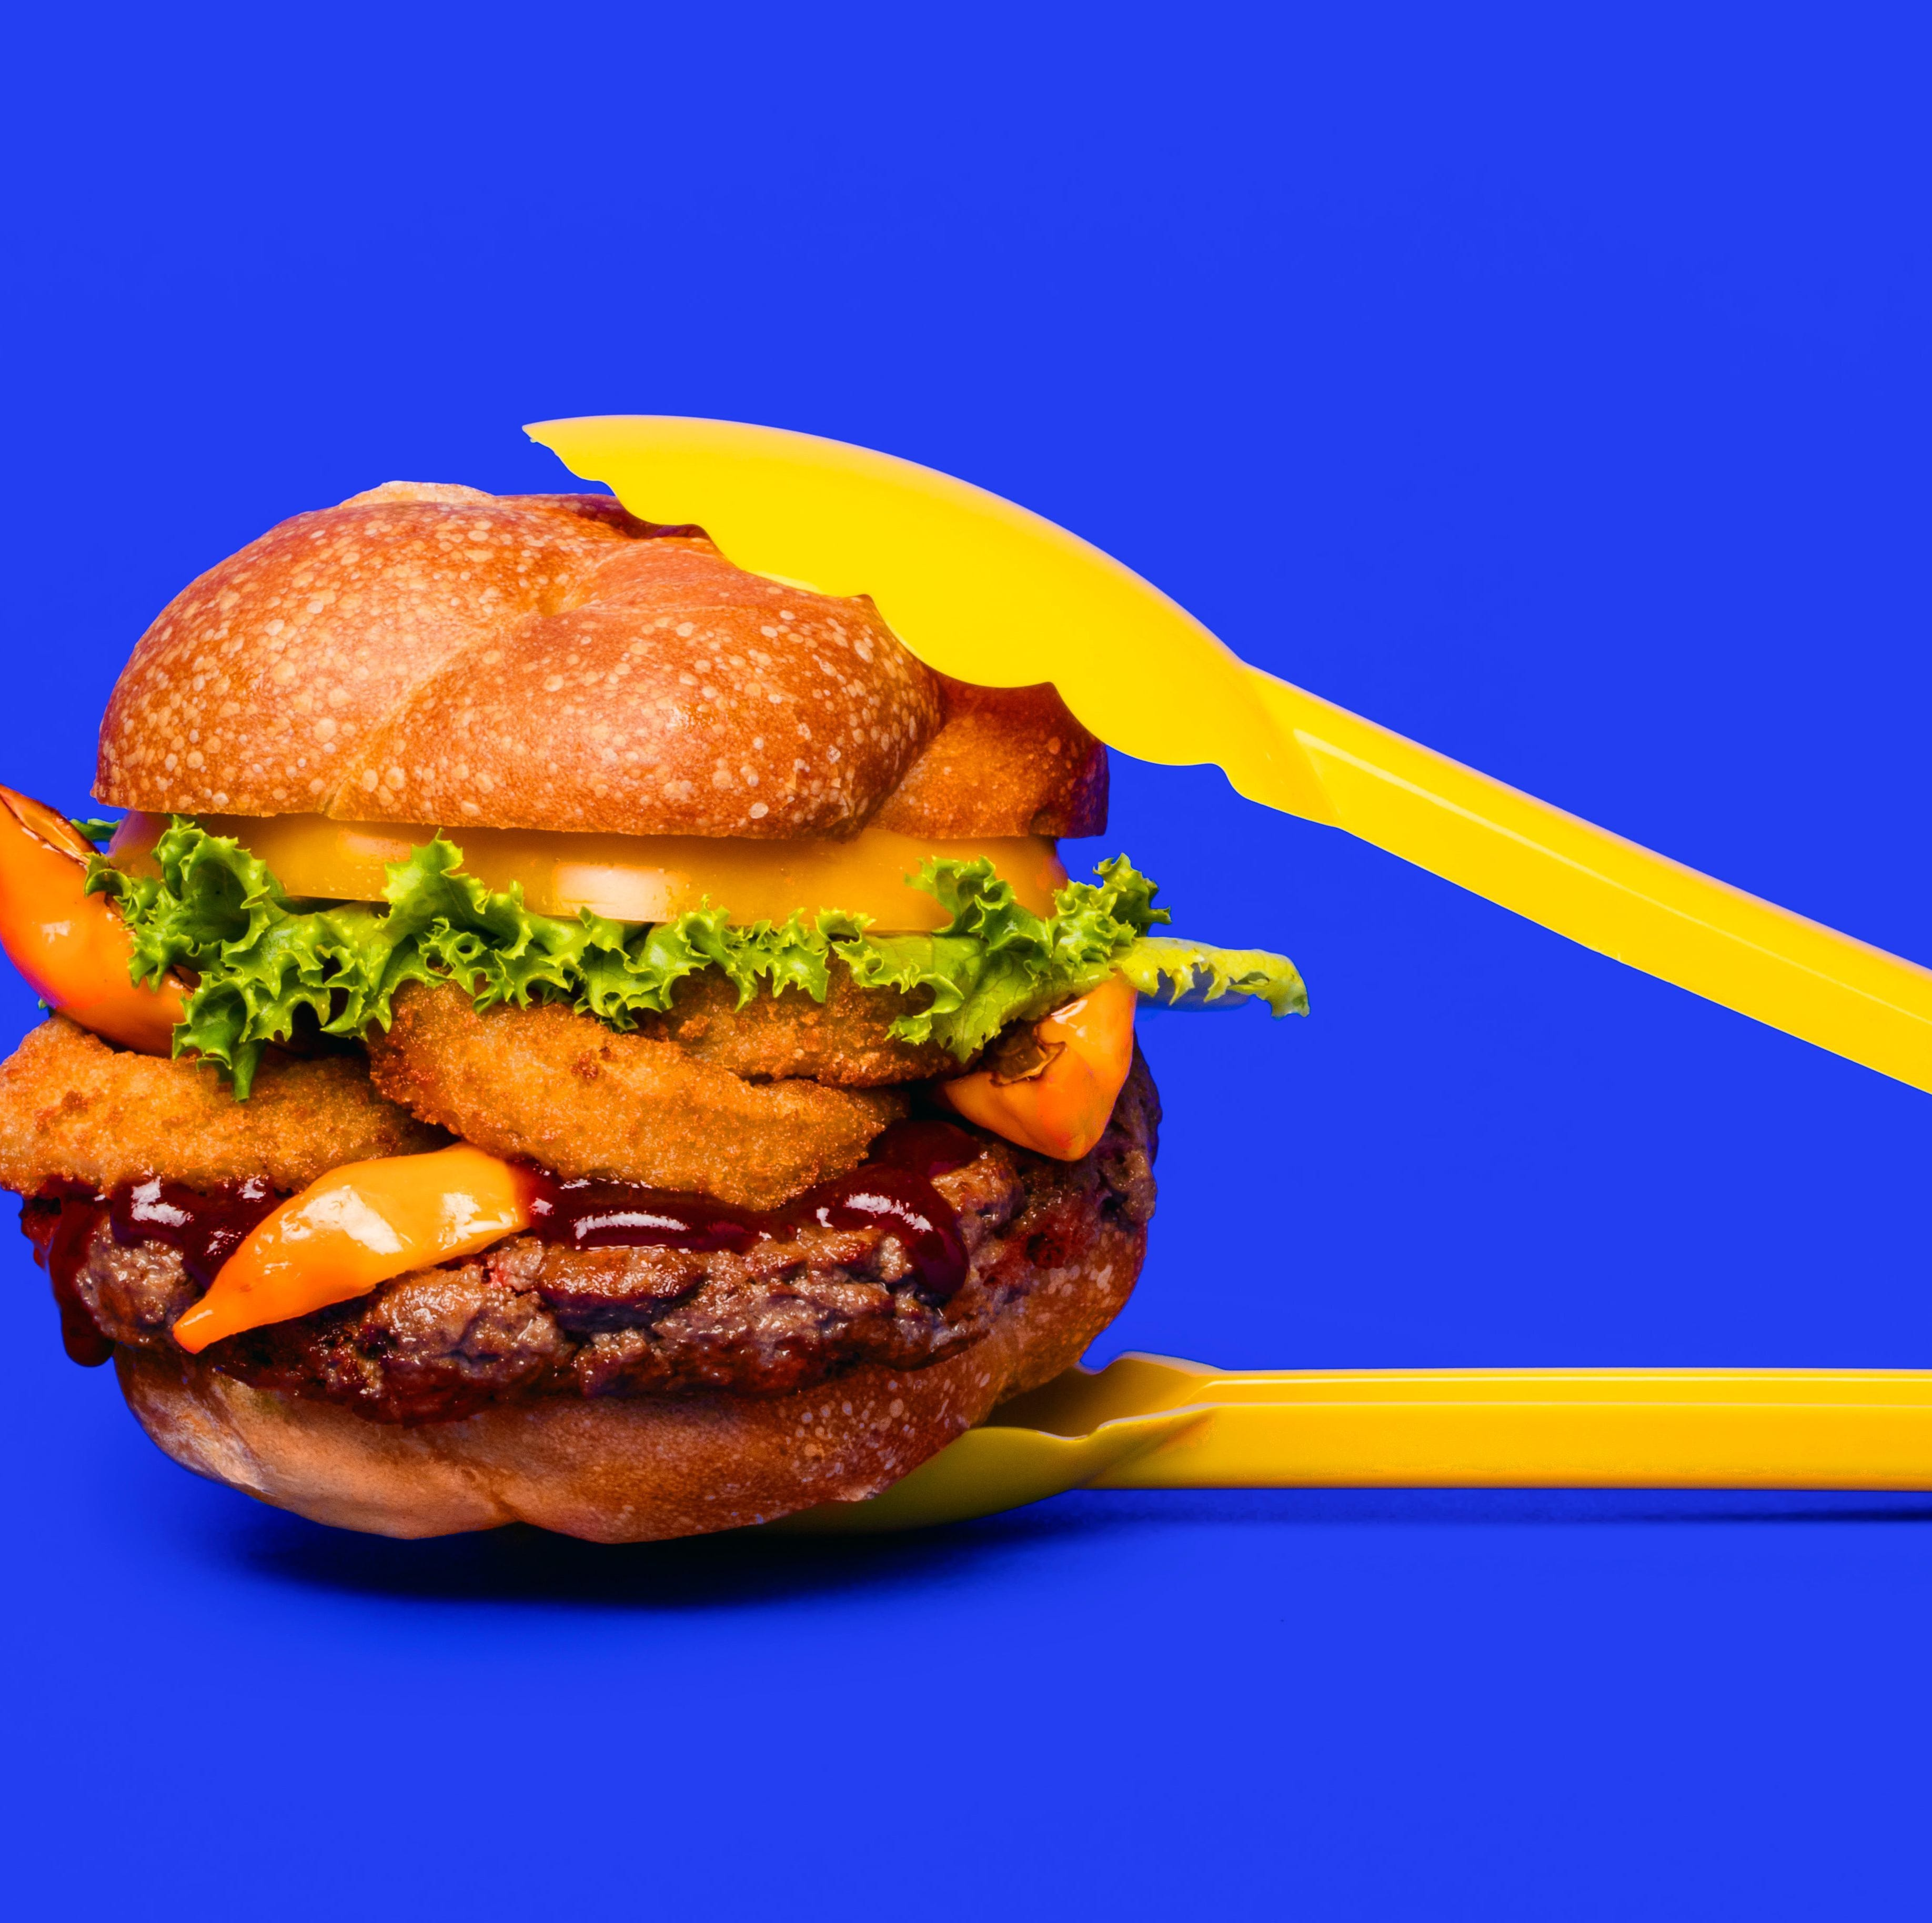 'Impossible Burgers' aren't impossible to find, but there's a shortage